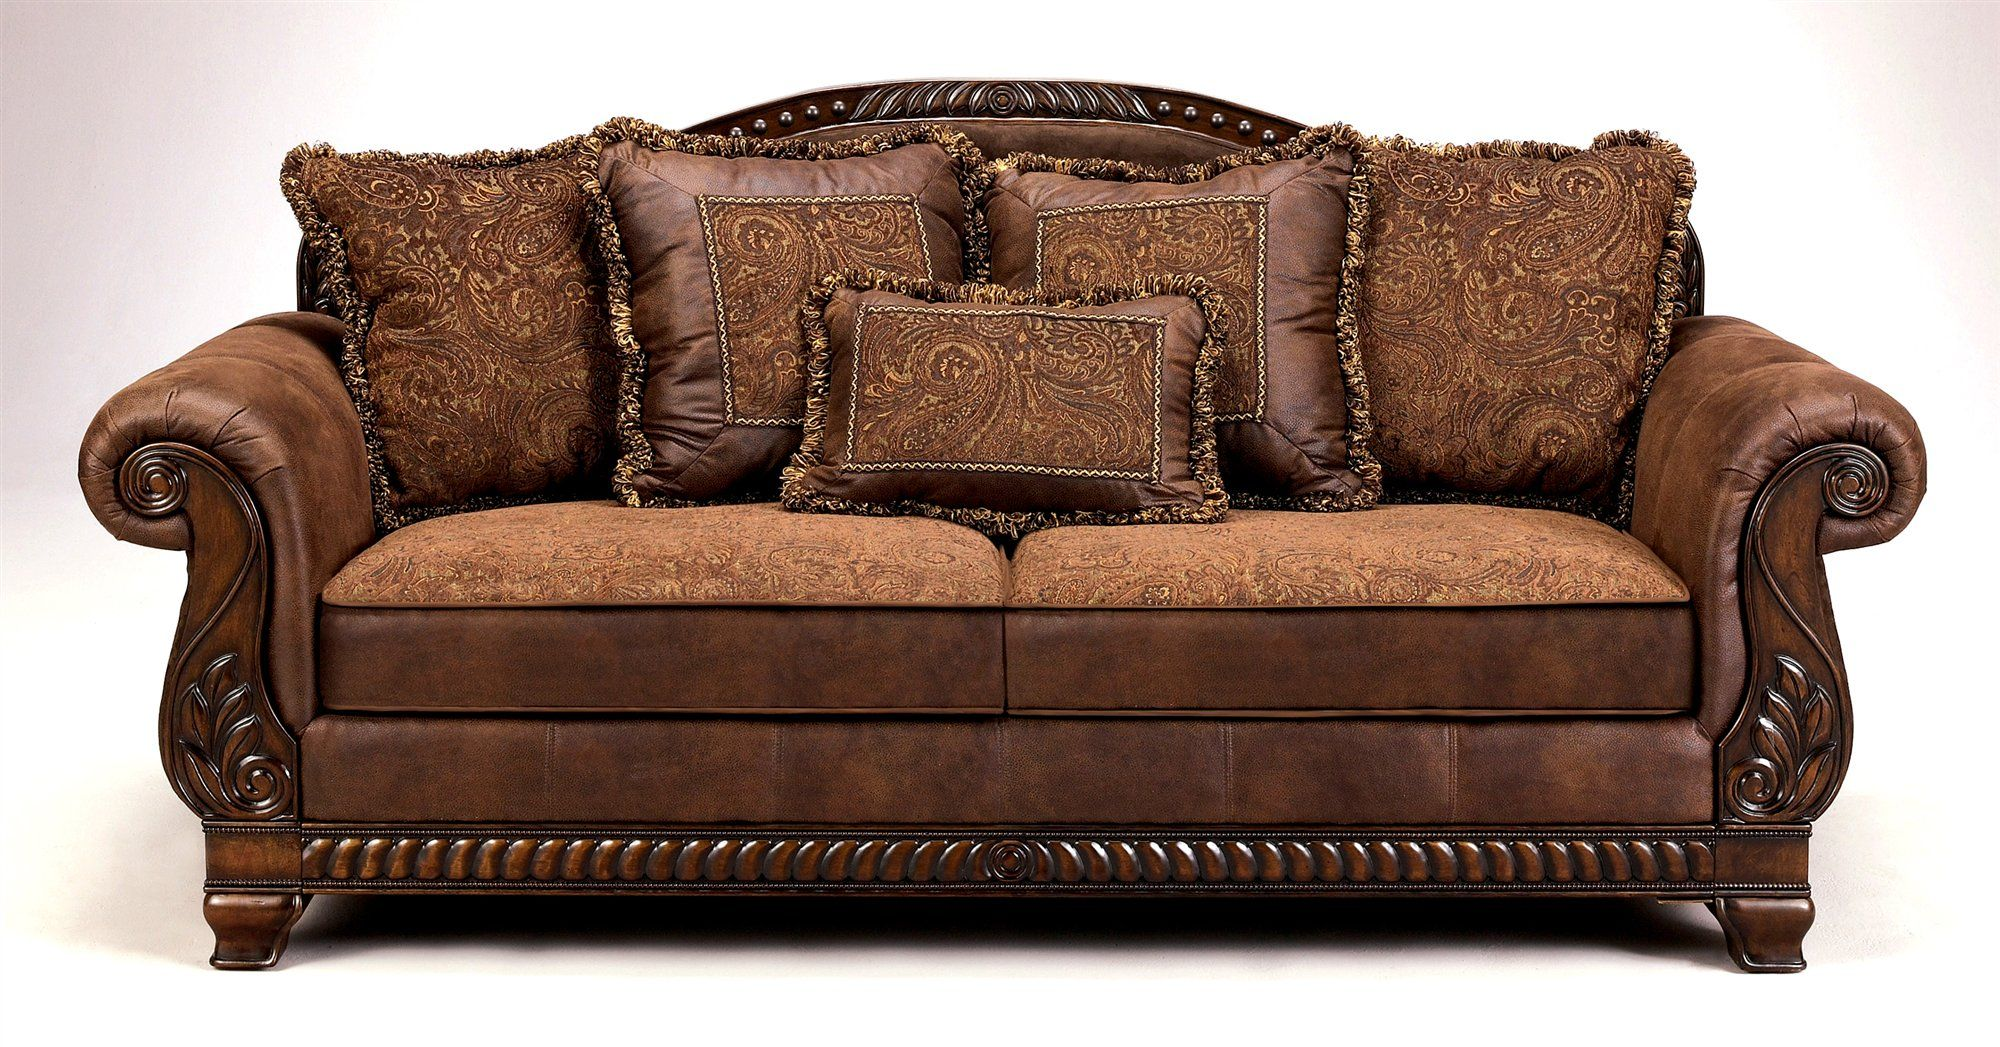 Buy Low Price ivgStores Furniture Faux Leather & Tapestry Sofa